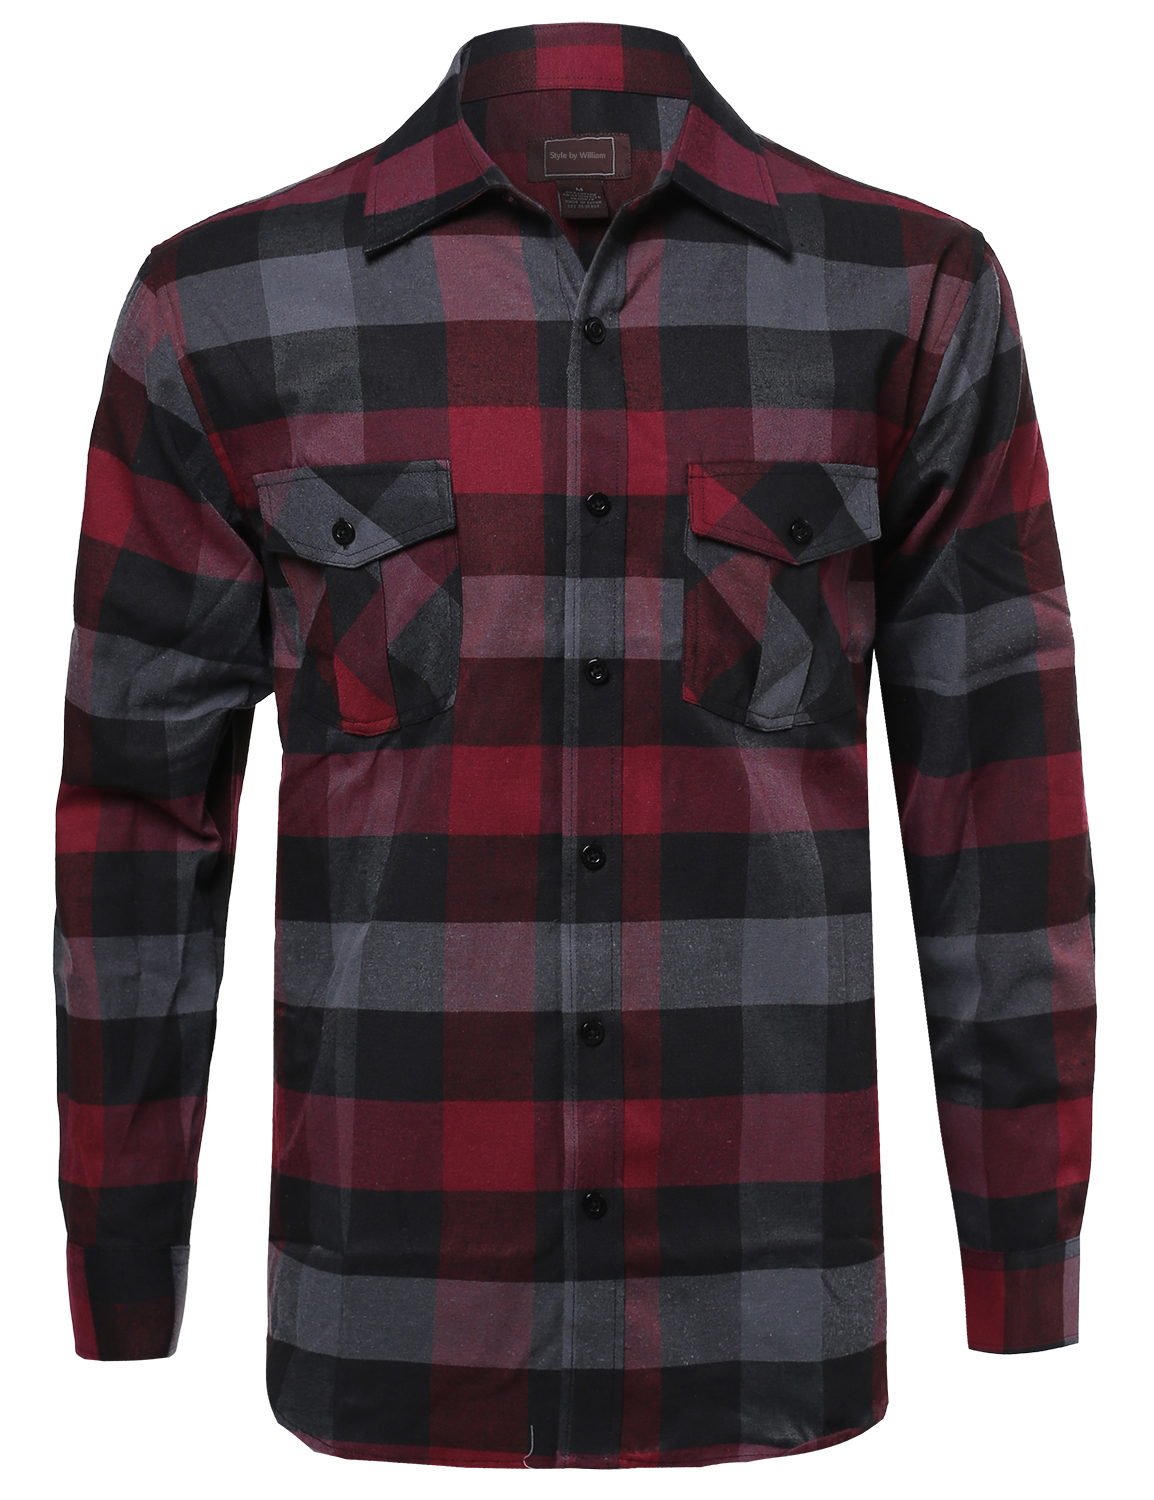 Fashionoutfit men 39 s casual flannel button down plaid for Mens plaid shirts long sleeve